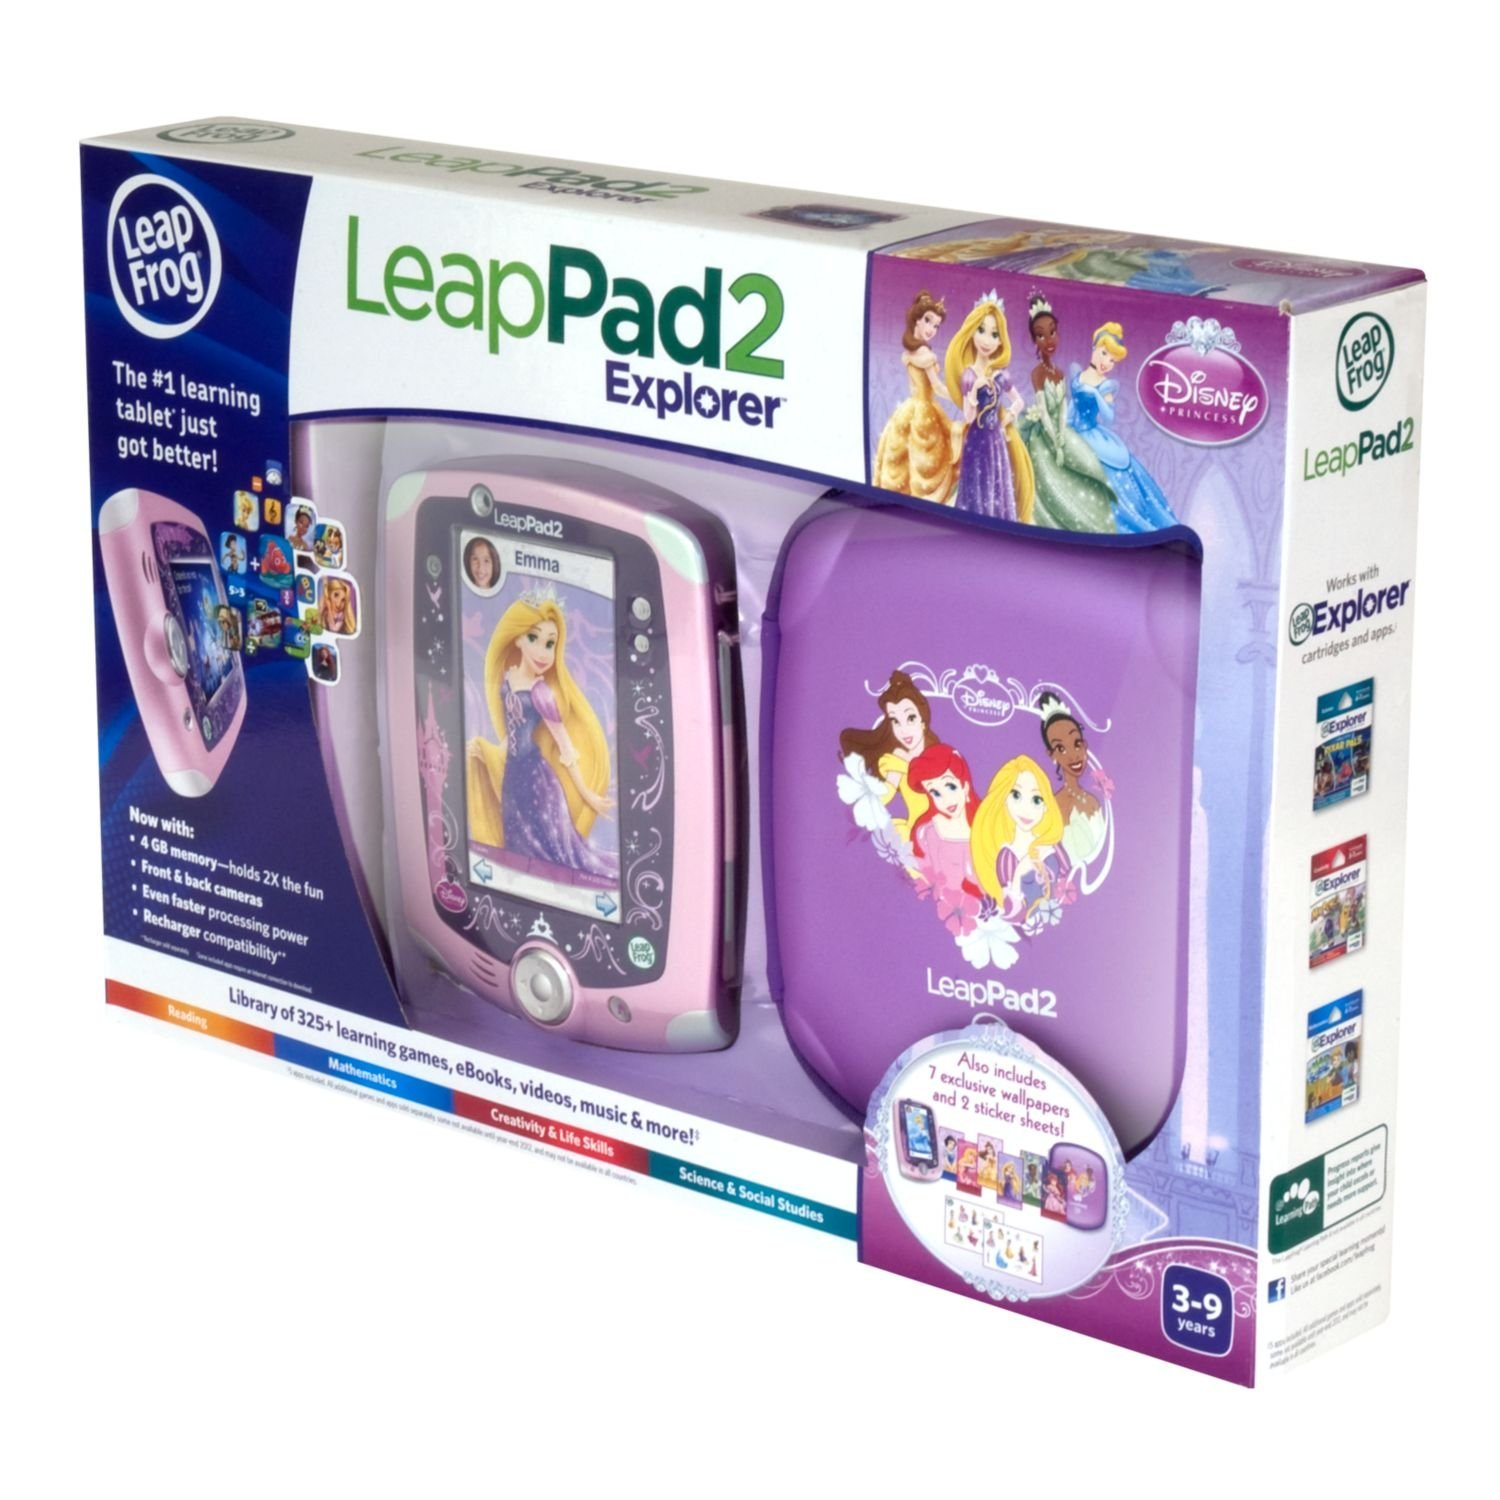 Disney Princess LeapFrog LeapPad2 Explorer Kids' Learning Tablet Bundle